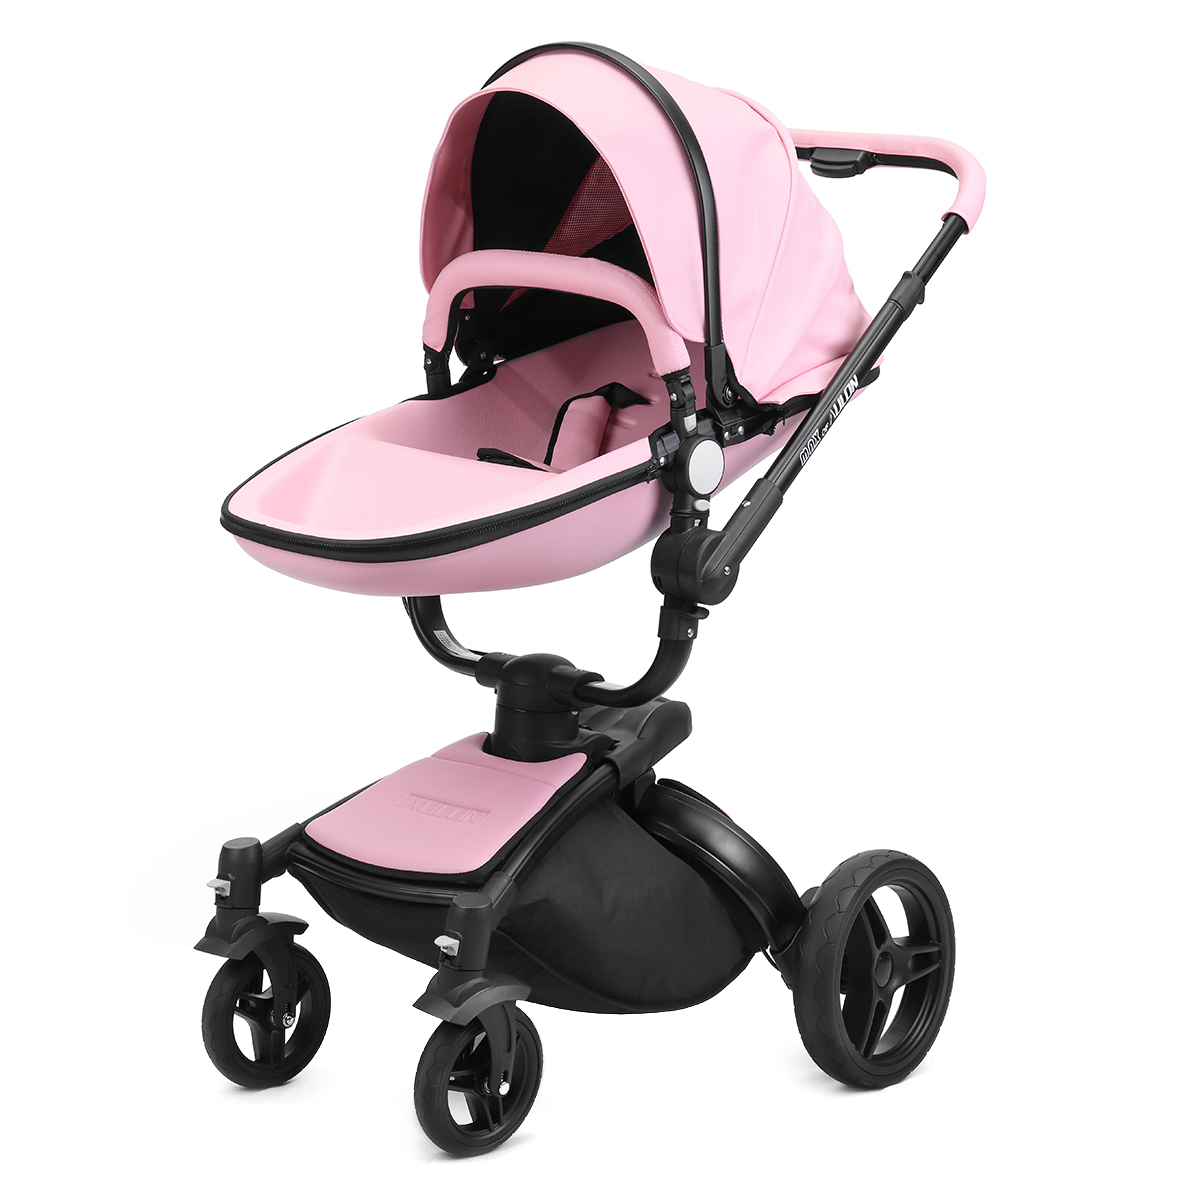 2 in 1/3 in 1 Baby stroller With Car Seat High Landscope Folding Baby Carriage For Child From 0-3 Years Prams For Newborns 5